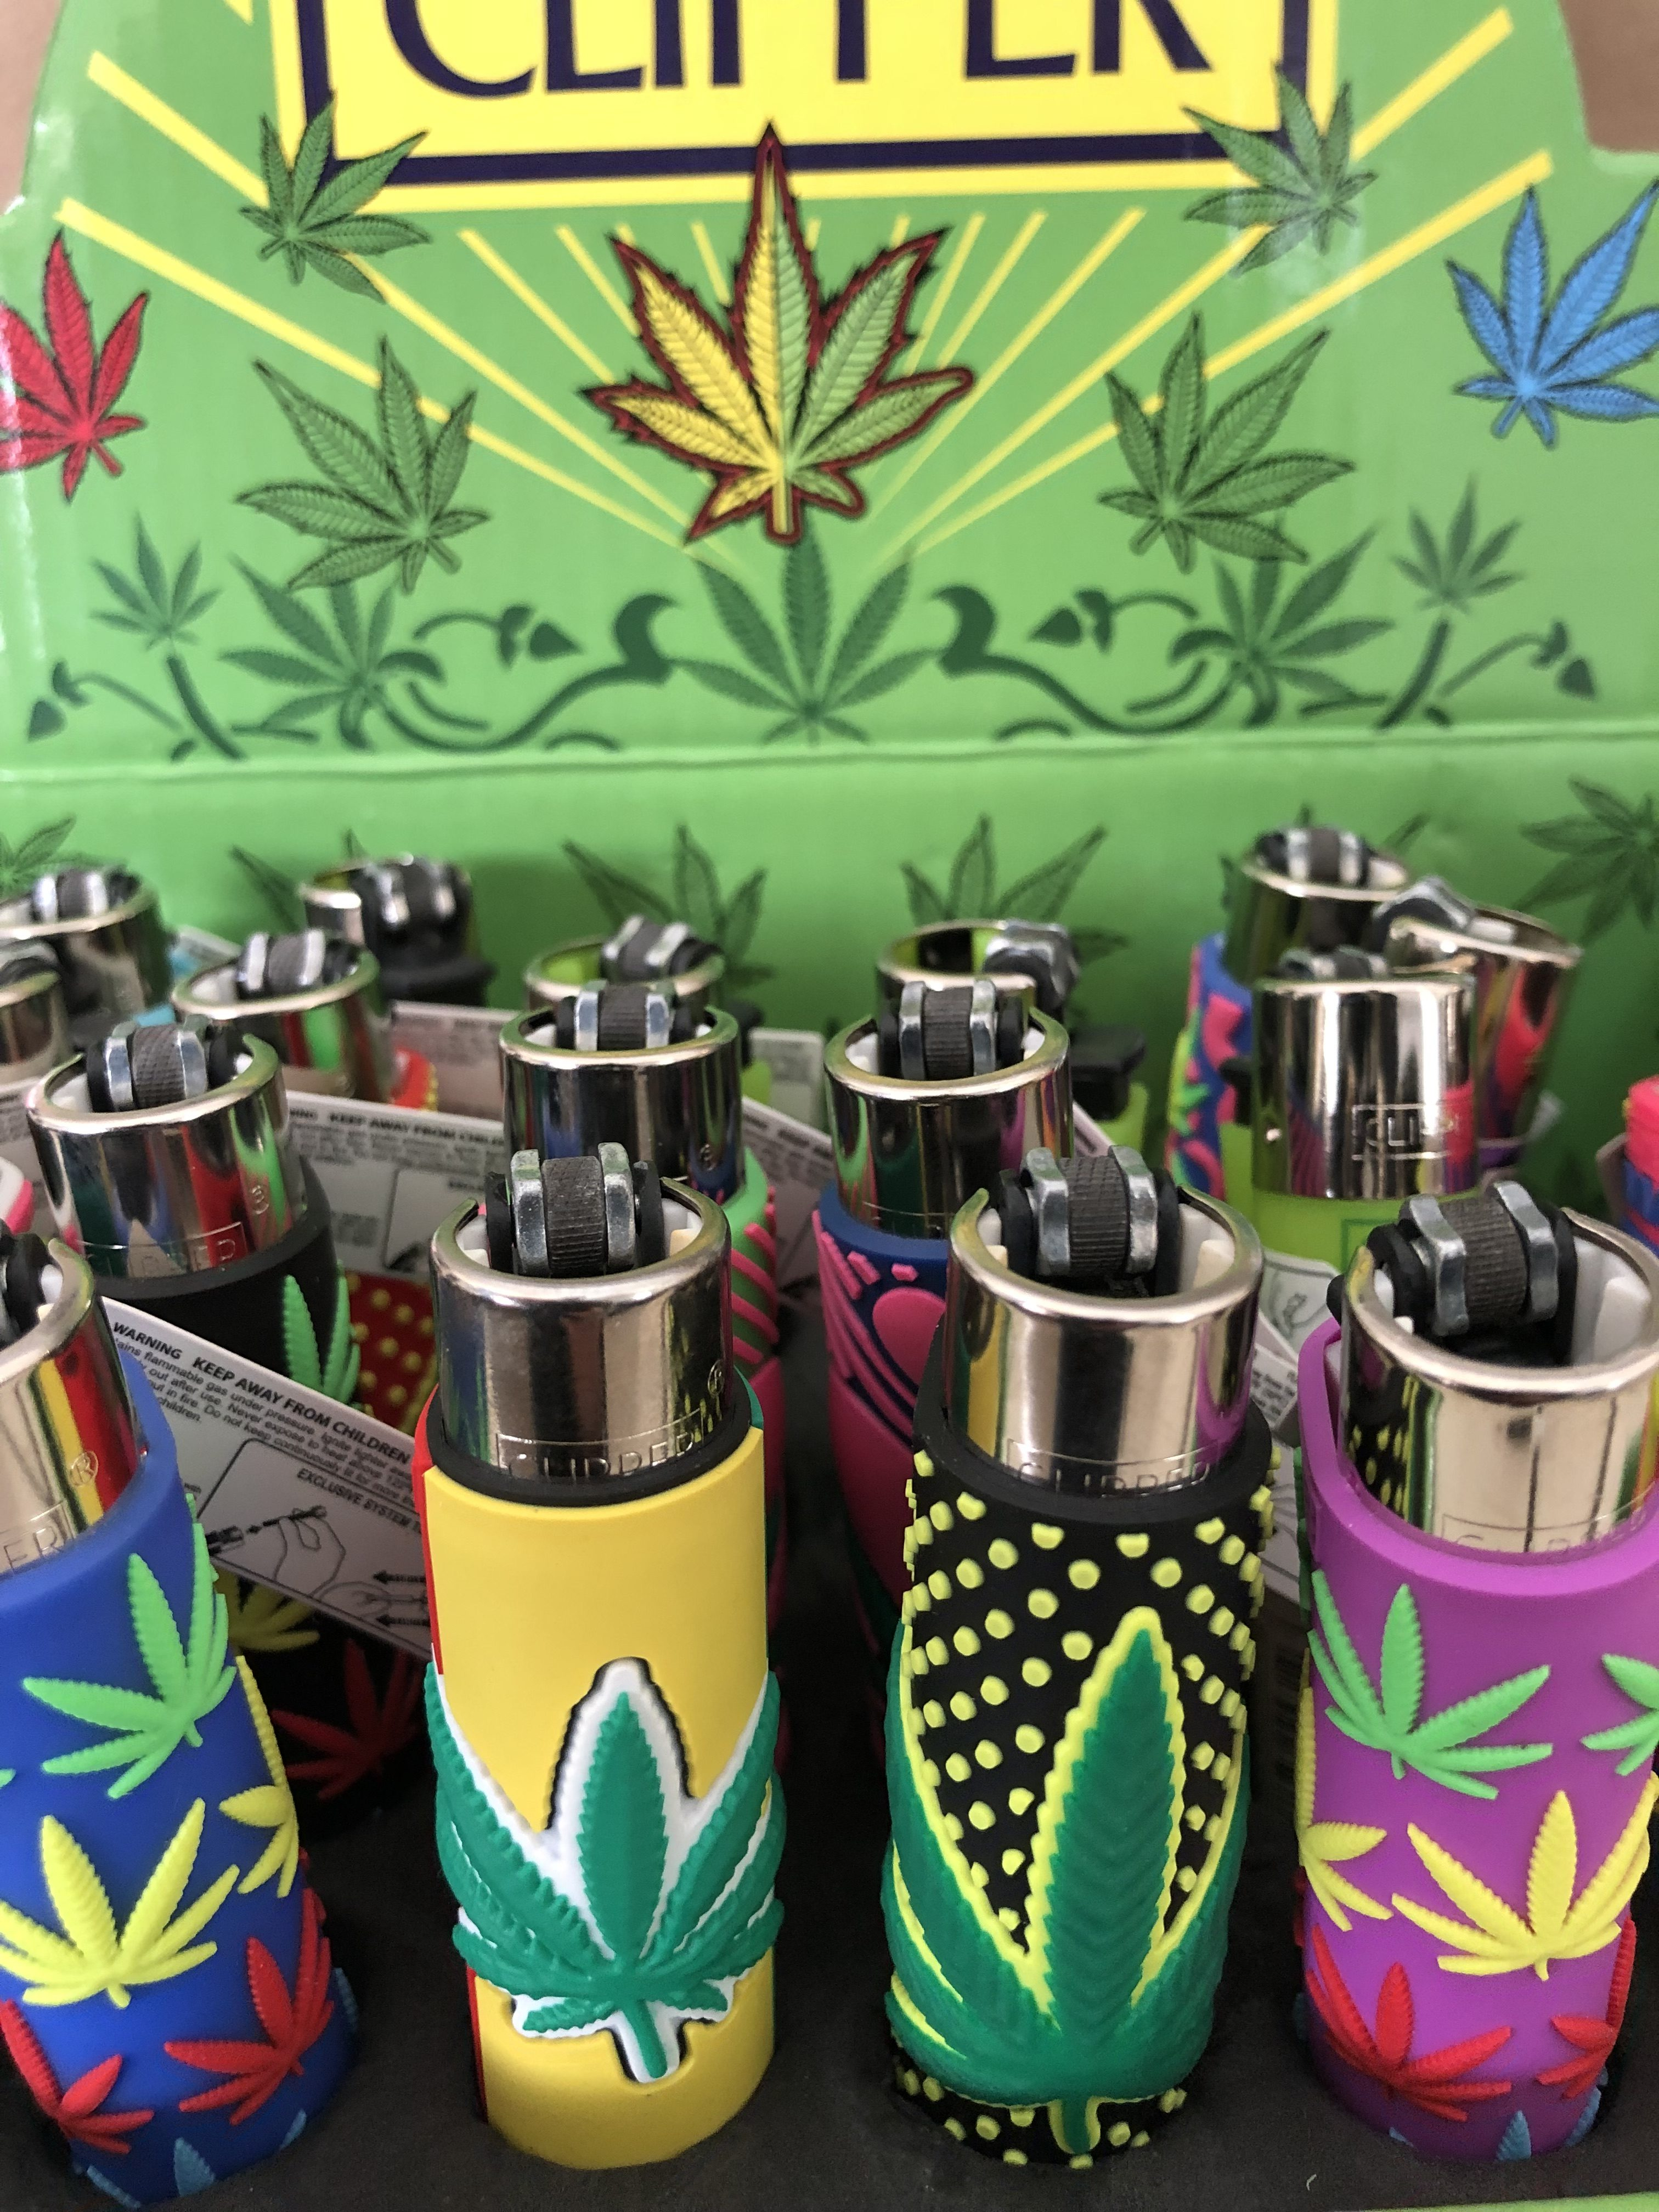 Clipper Lighter 420 Weed Design - Delivery Dispensary